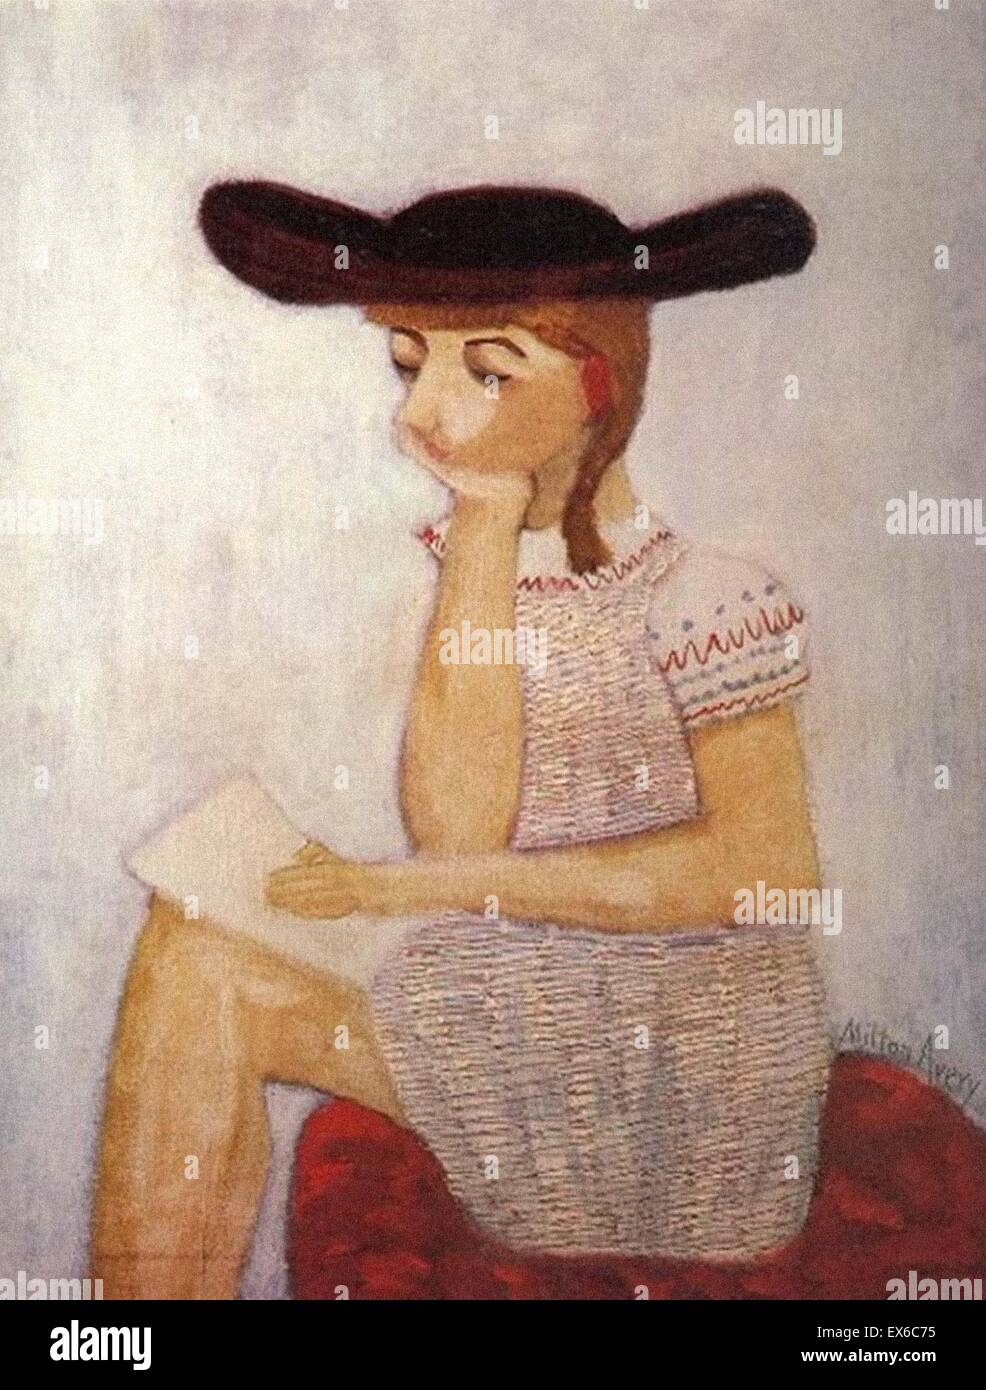 Milton Avery  The Brown Hat - Stock Image